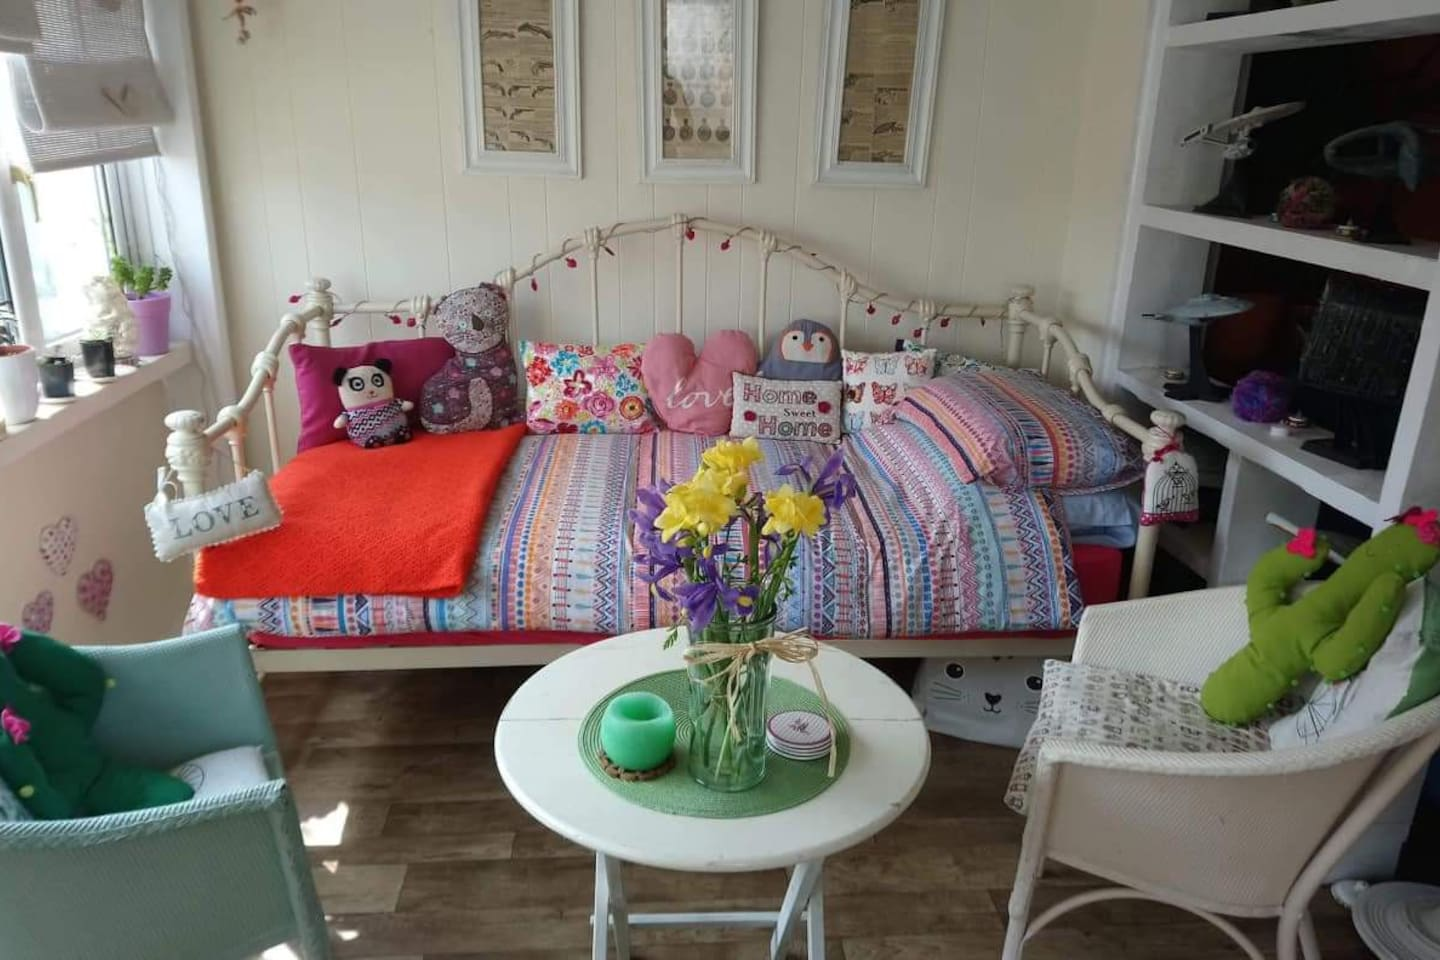 The day bed in the public sun room